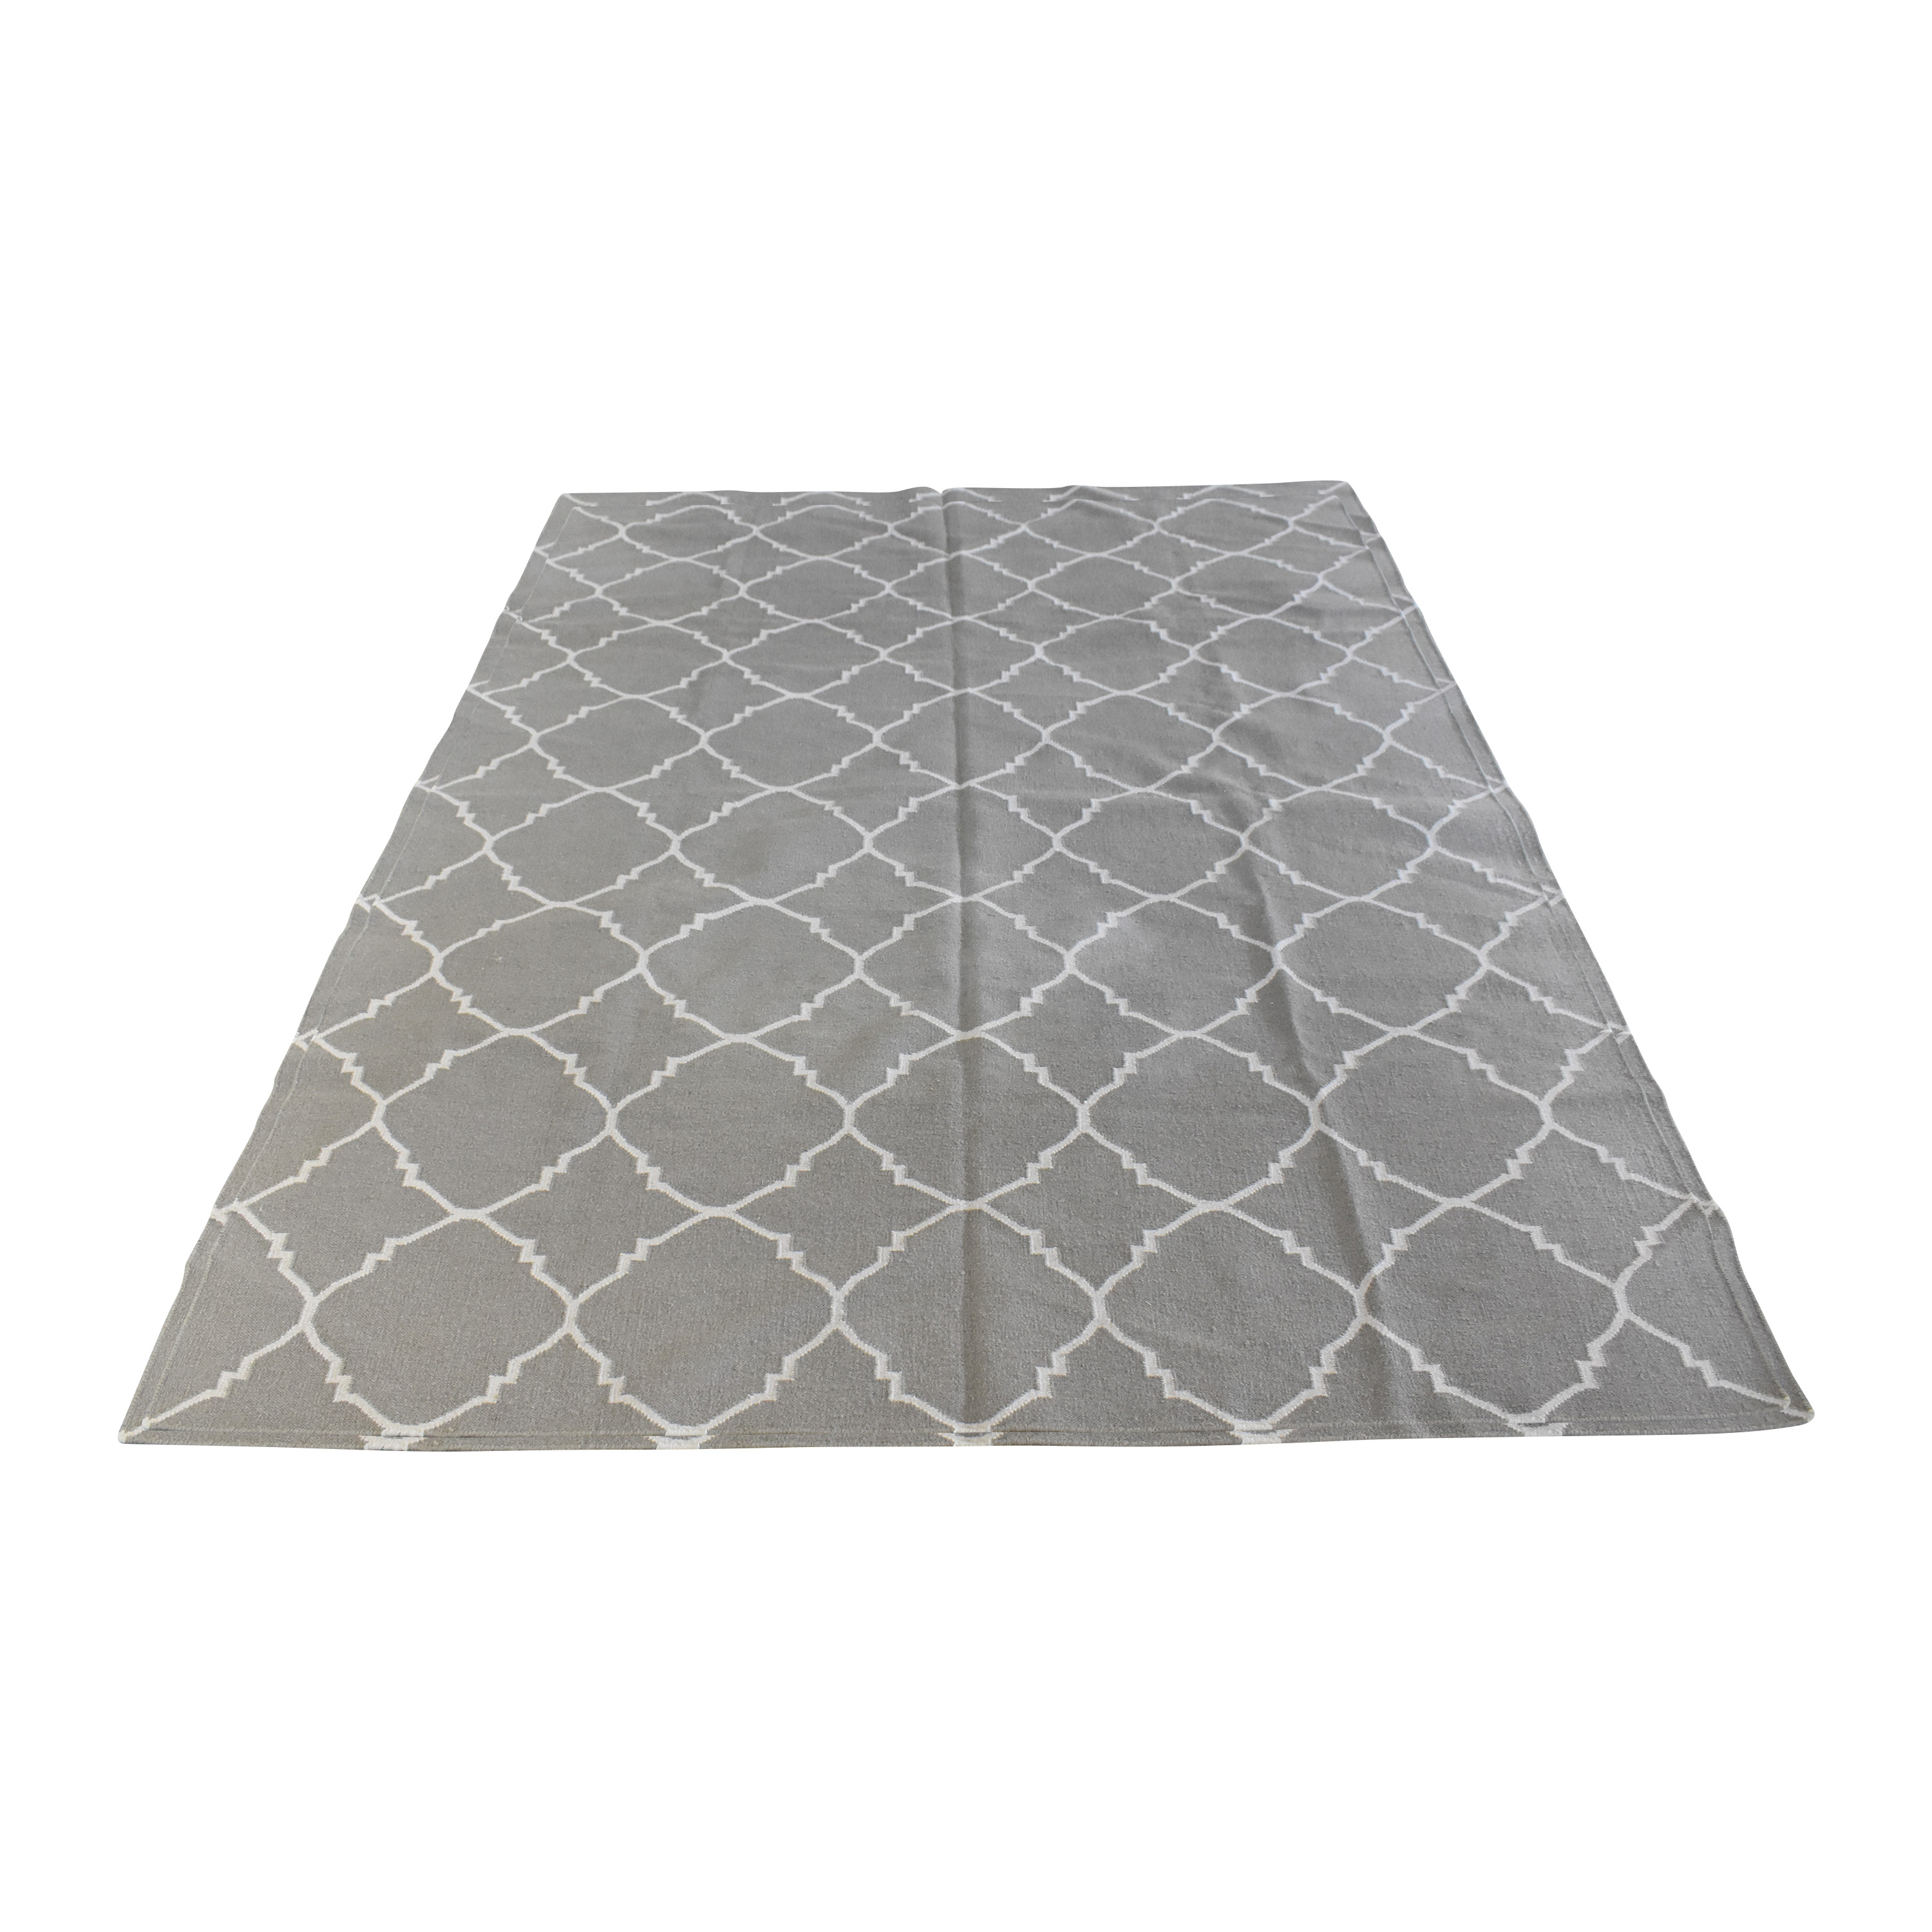 Shades of Light Shades of Light Diamond Soho Trellis Dhurrie Rug used